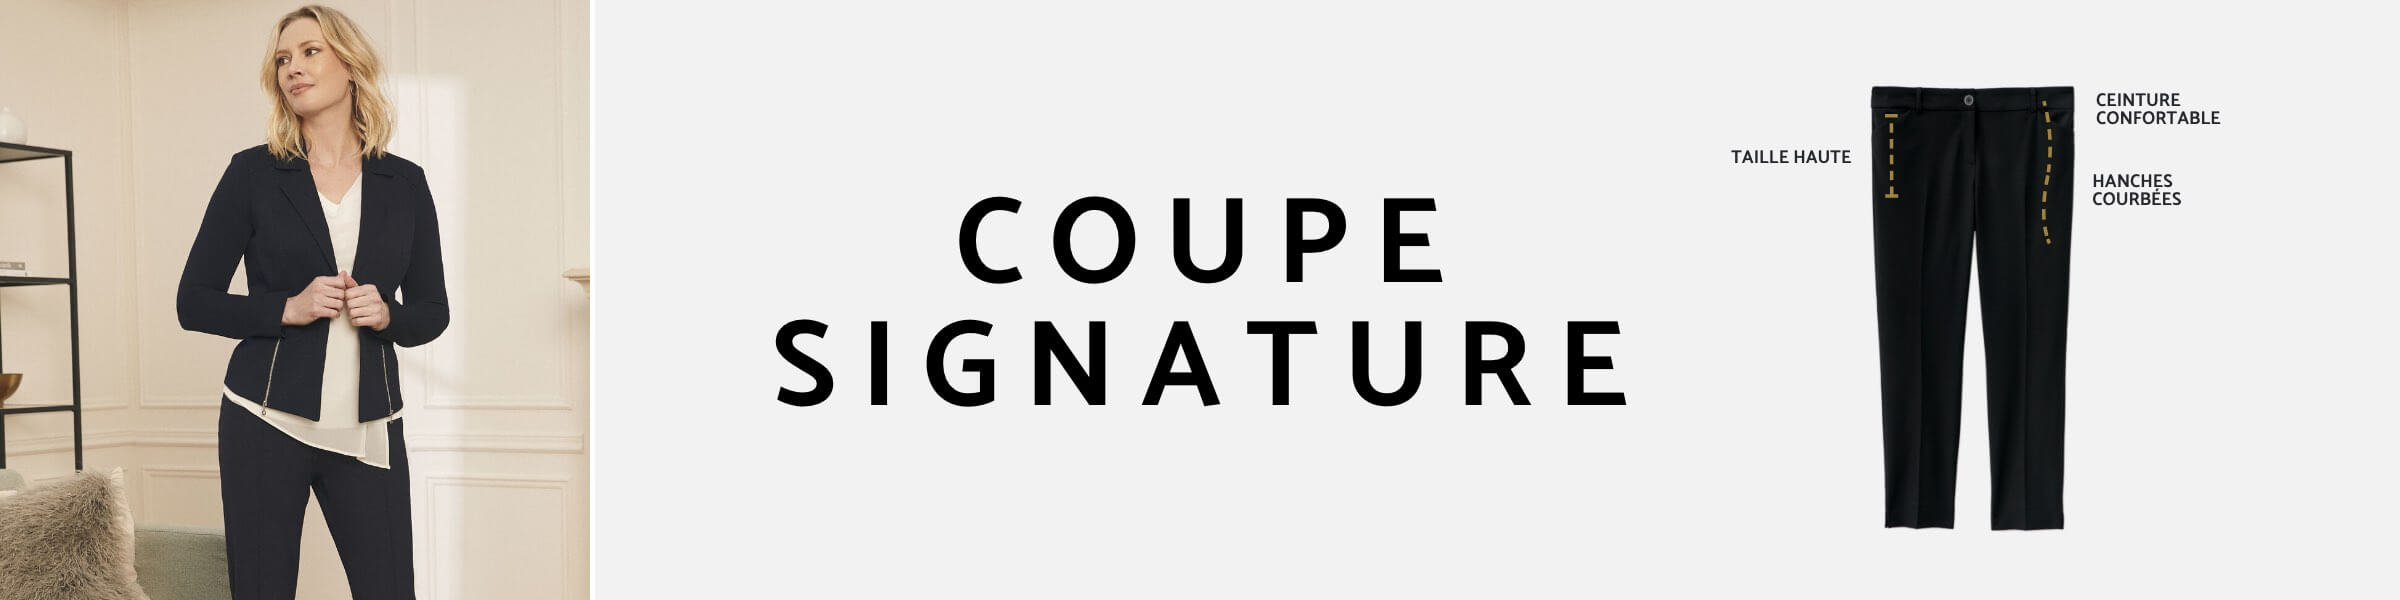 Laura - Coupe moderne